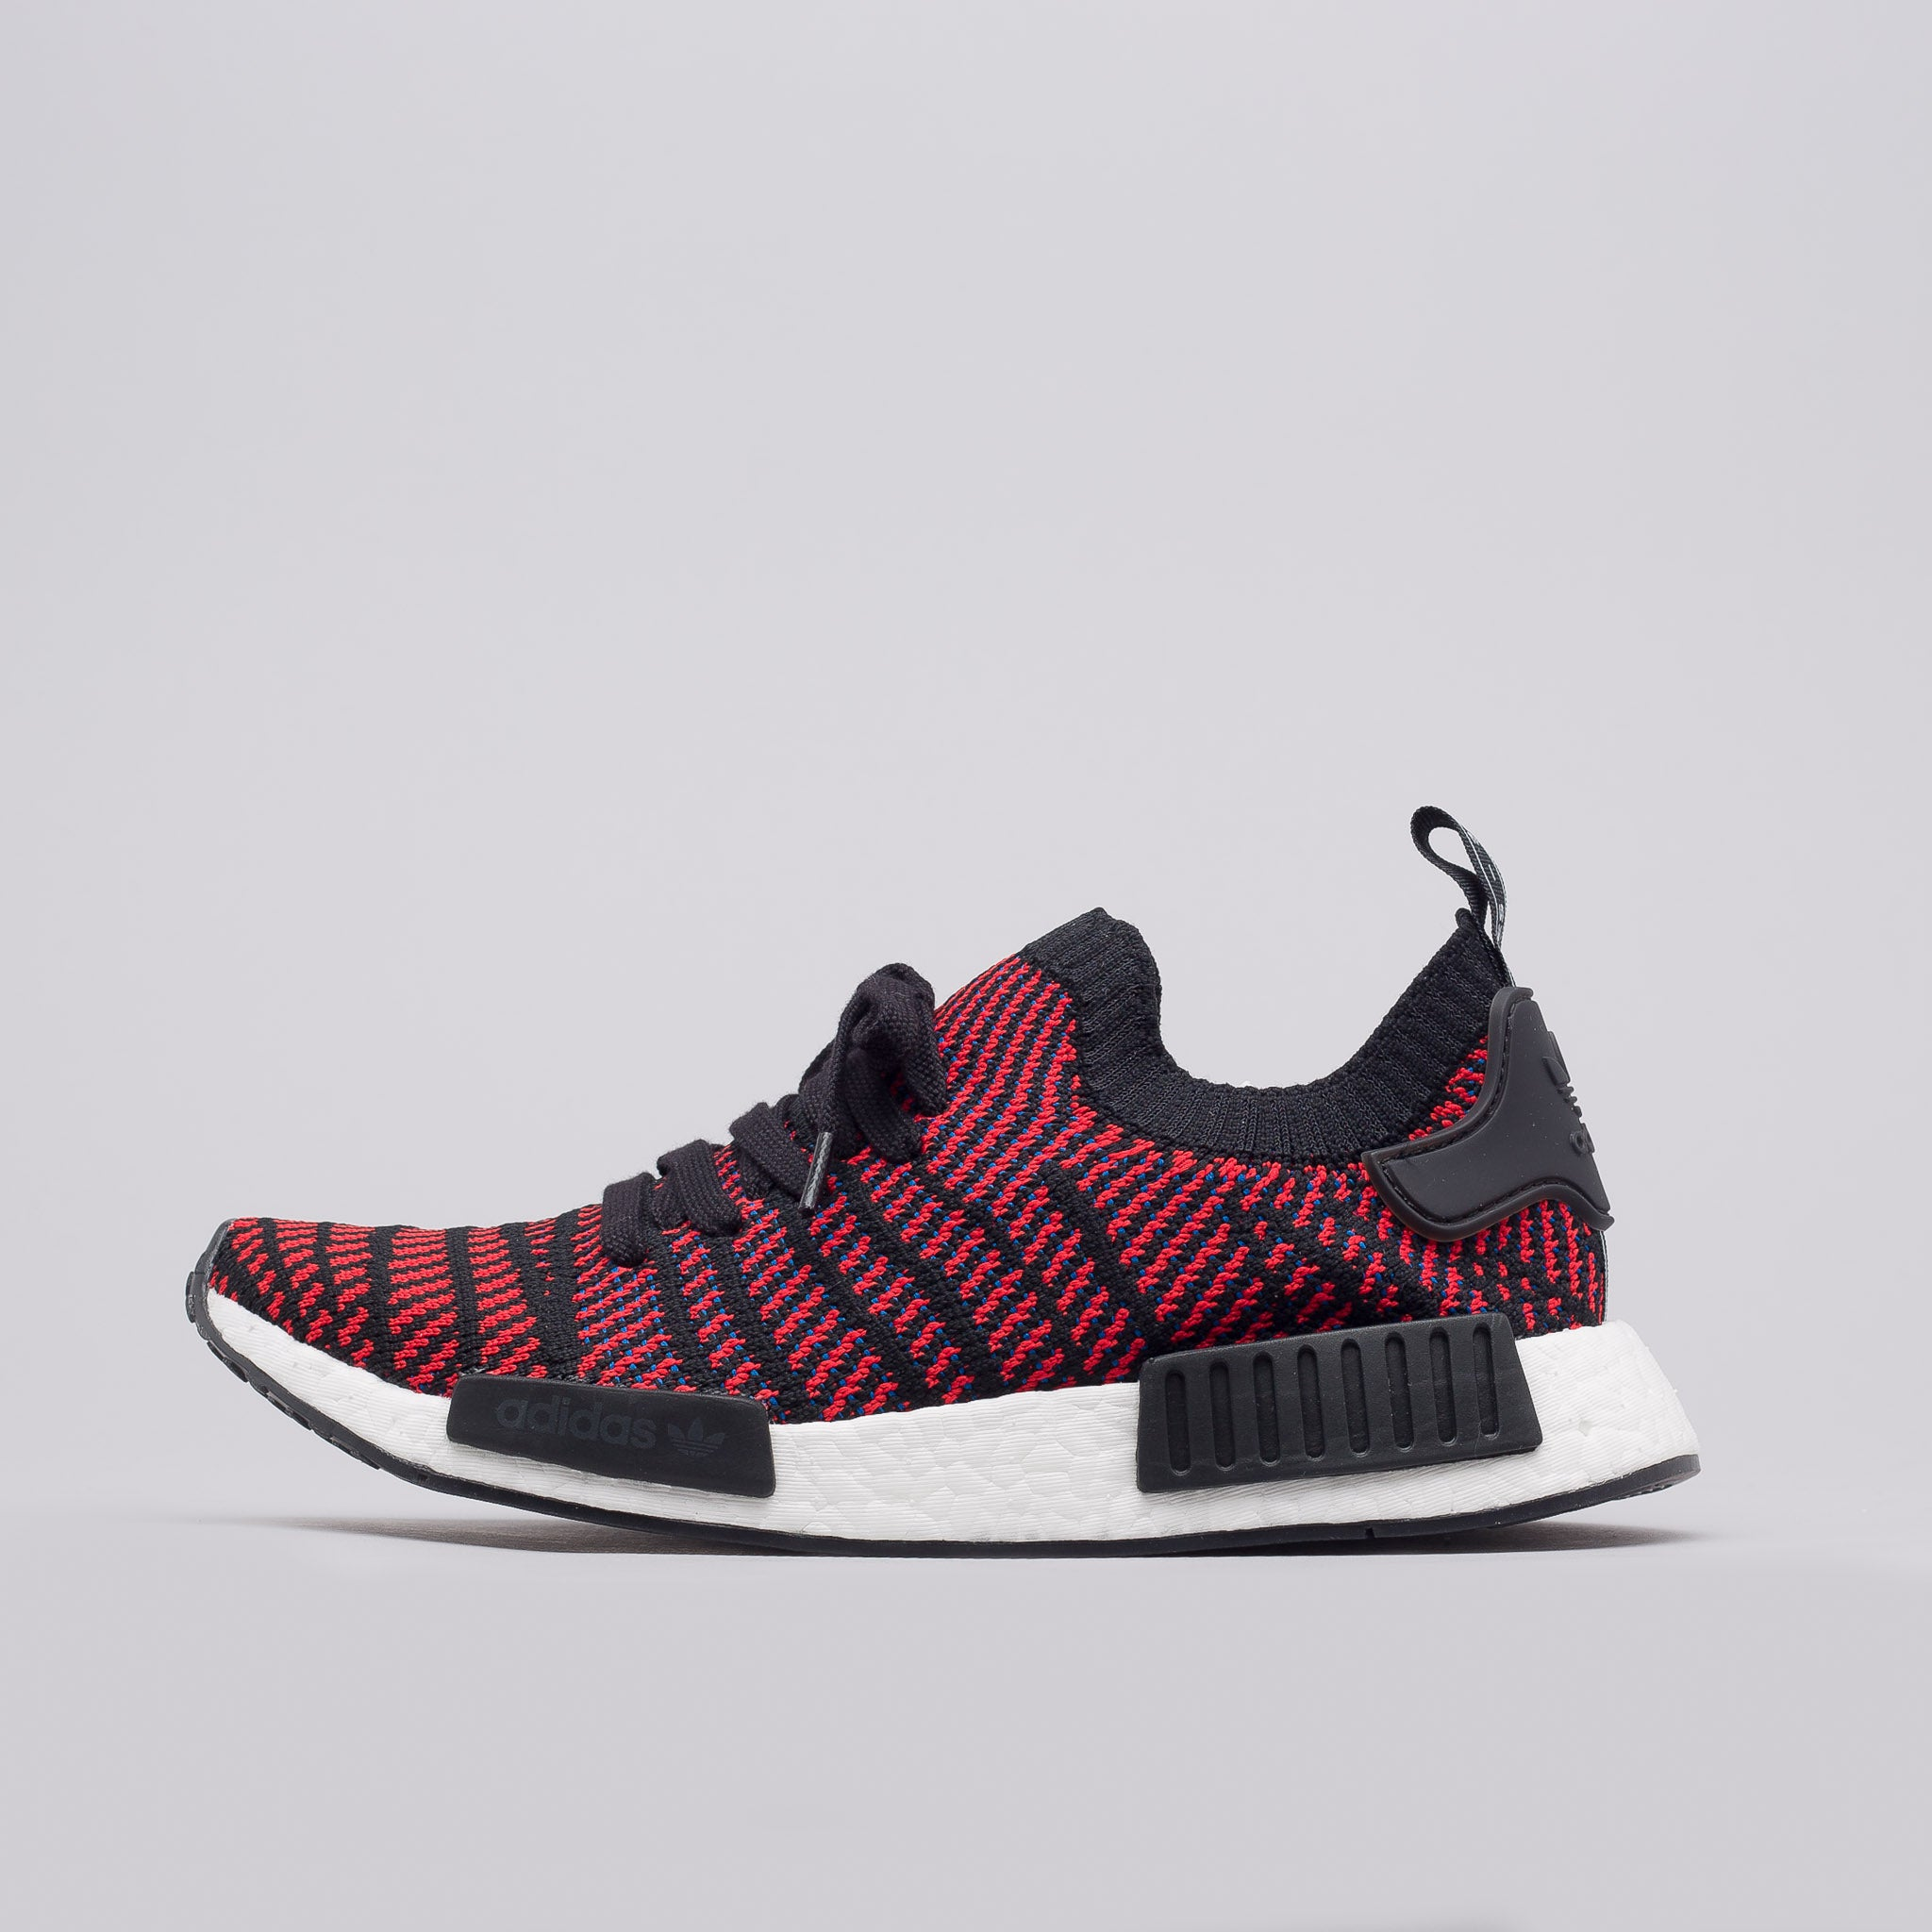 adidas NMD R1 No Mad Men's Running Shoes Core Black/running